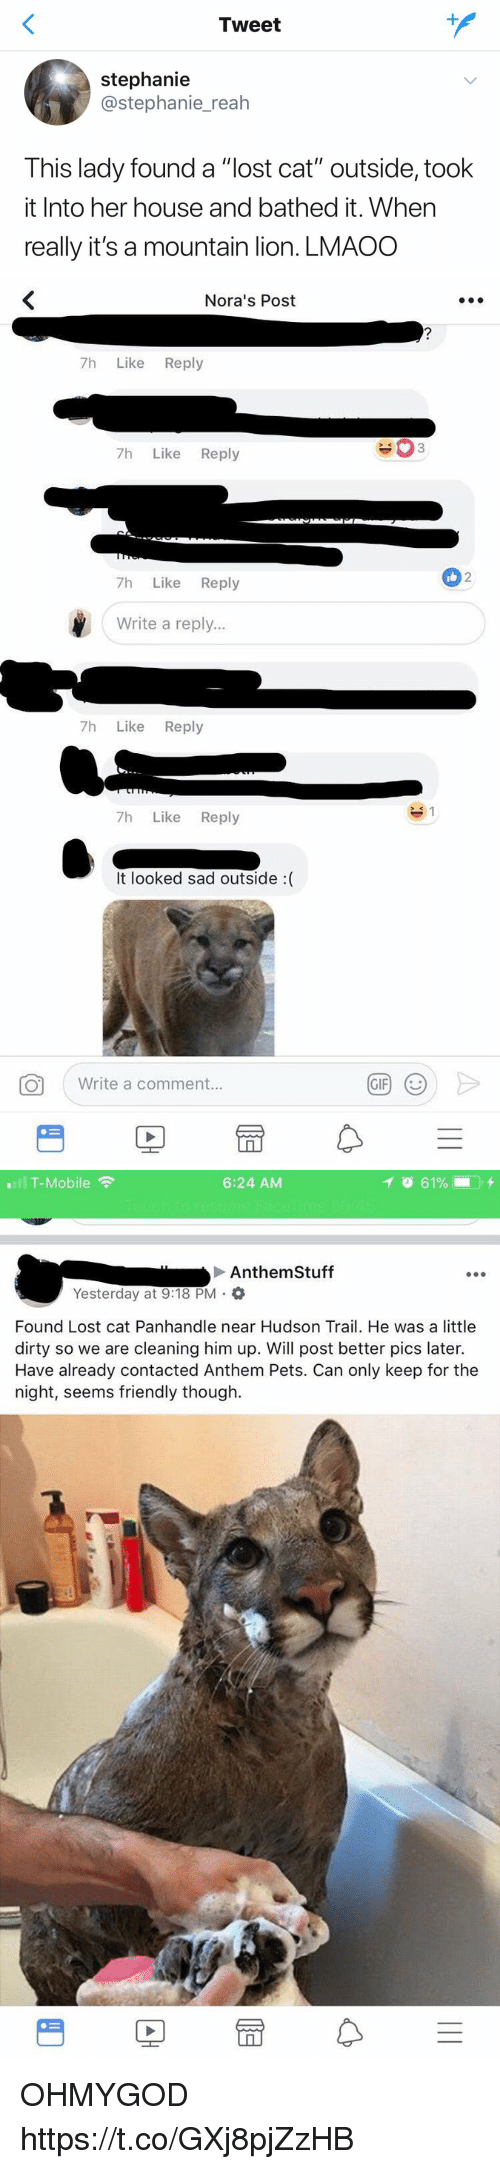 "Gif, T-Mobile, and Lost: Tweet  stephanie  @stephanie_reah  This lady found a ""lost cat"" outside, took  it Into her house and bathed it. When  really it's a mountain lion. LMAOO   Nora's Post  7h Like Reply  7h Like Reply  2  7h Like Reply  Write a reply...  7h Like Reply  7h Like Reply  It looked sad outside :(  。  ( Write a comment.  GIF)  (じ   T-Mobile  6:24 AM  Anthem Stuff  Yesterday at 9:18 PM .  Found Lost cat Panhandle near Hudson Trail. He was a little  dirty so we are cleaning him up. Will post better pics later.  Have already contacted Anthem Pets. Can only keep for the  night, seems friendly though.  rt OHMYGOD https://t.co/GXj8pjZzHB"